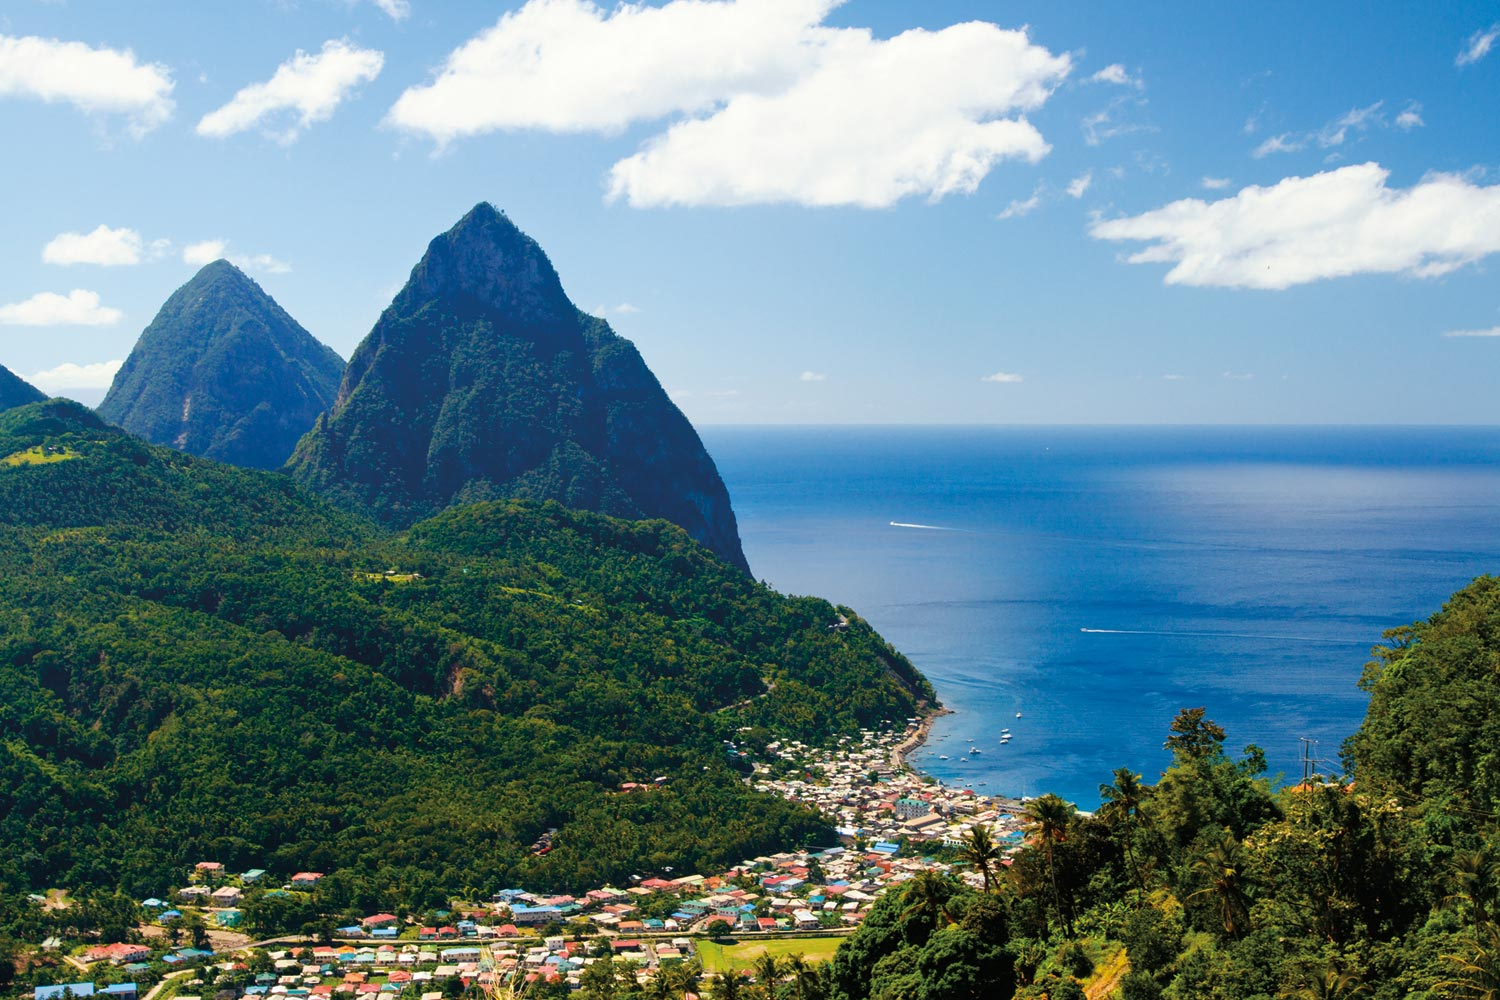 The majestic Pitons have inspired St Lucia's poet for generations. Photograph by Lucia Pitter / Shutterstock.com